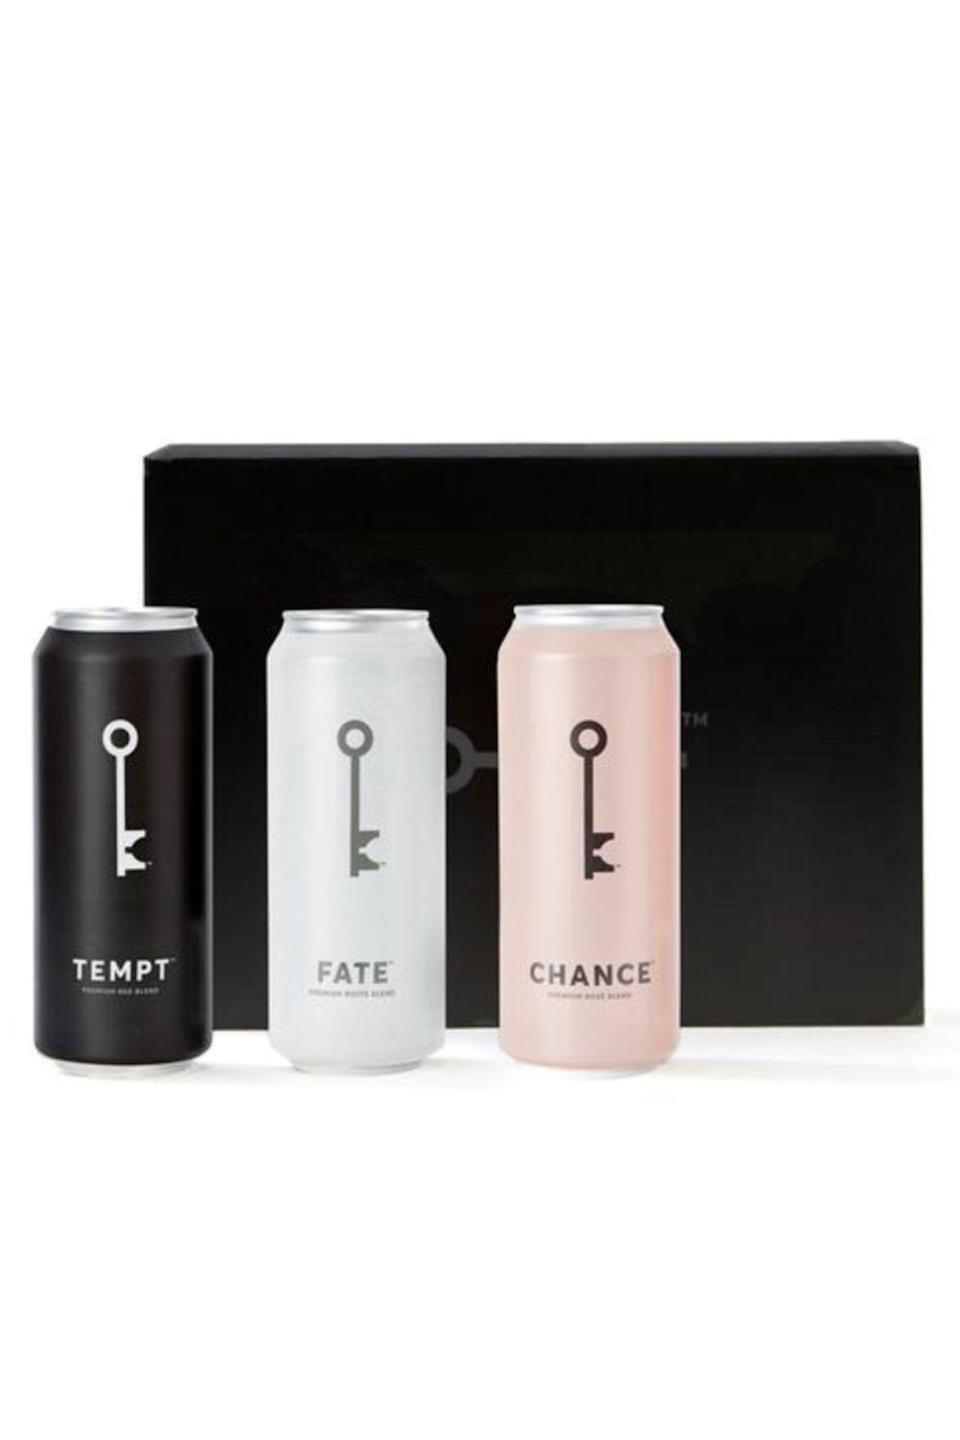 """<p><strong>Wine Society</strong></p><p>winesociety.com</p><p><strong>$49.00</strong></p><p><a href=""""https://winesociety.com/products/3-pack"""" rel=""""nofollow noopener"""" target=""""_blank"""" data-ylk=""""slk:Shop Now"""" class=""""link rapid-noclick-resp"""">Shop Now</a></p><p>She'll thank you for introducing her to this canned wine. It's a great grab-and-go product for a picnic or the perfect single serving so there's no need to open a full bottle!</p>"""